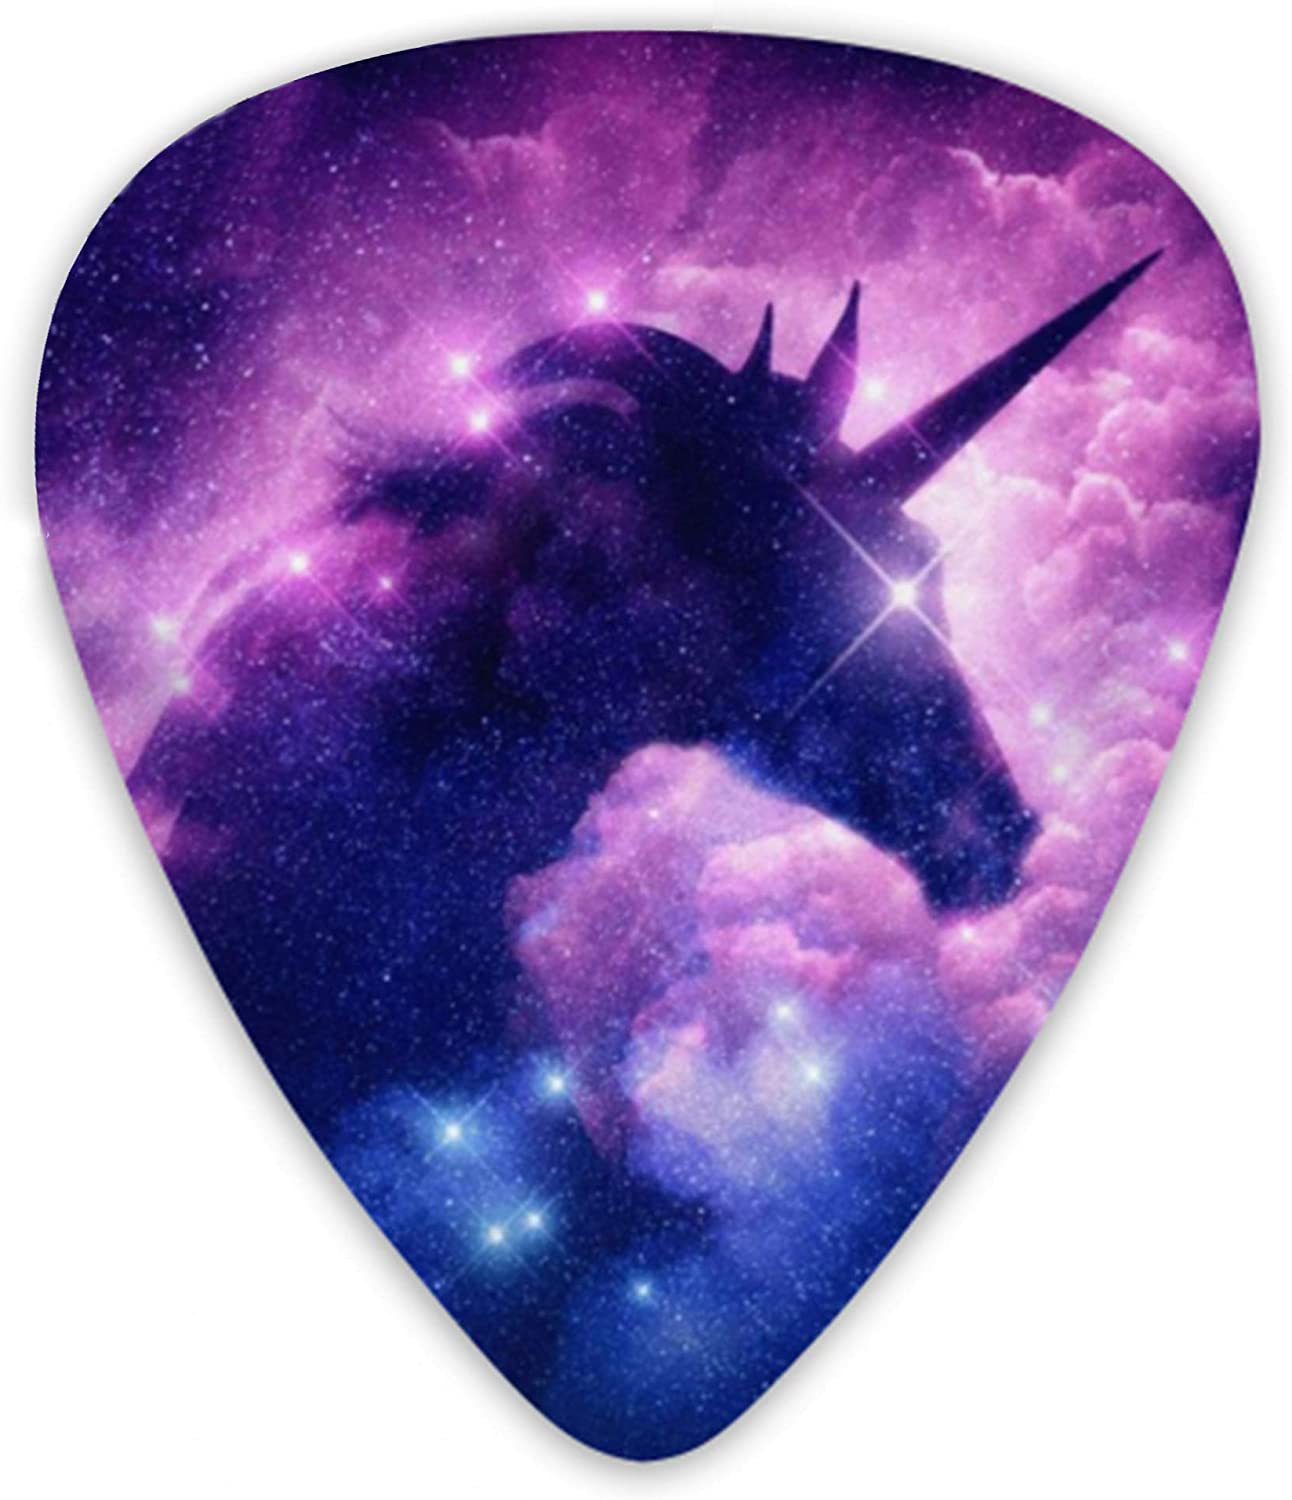 Guitar Picks Cute Unicorn Galaxy Premium Picks Sampler Includes Thin Medium And Heavy Gauge Unique Guitar Gift For Bass Electric Acoustic Guitars (12 Count)